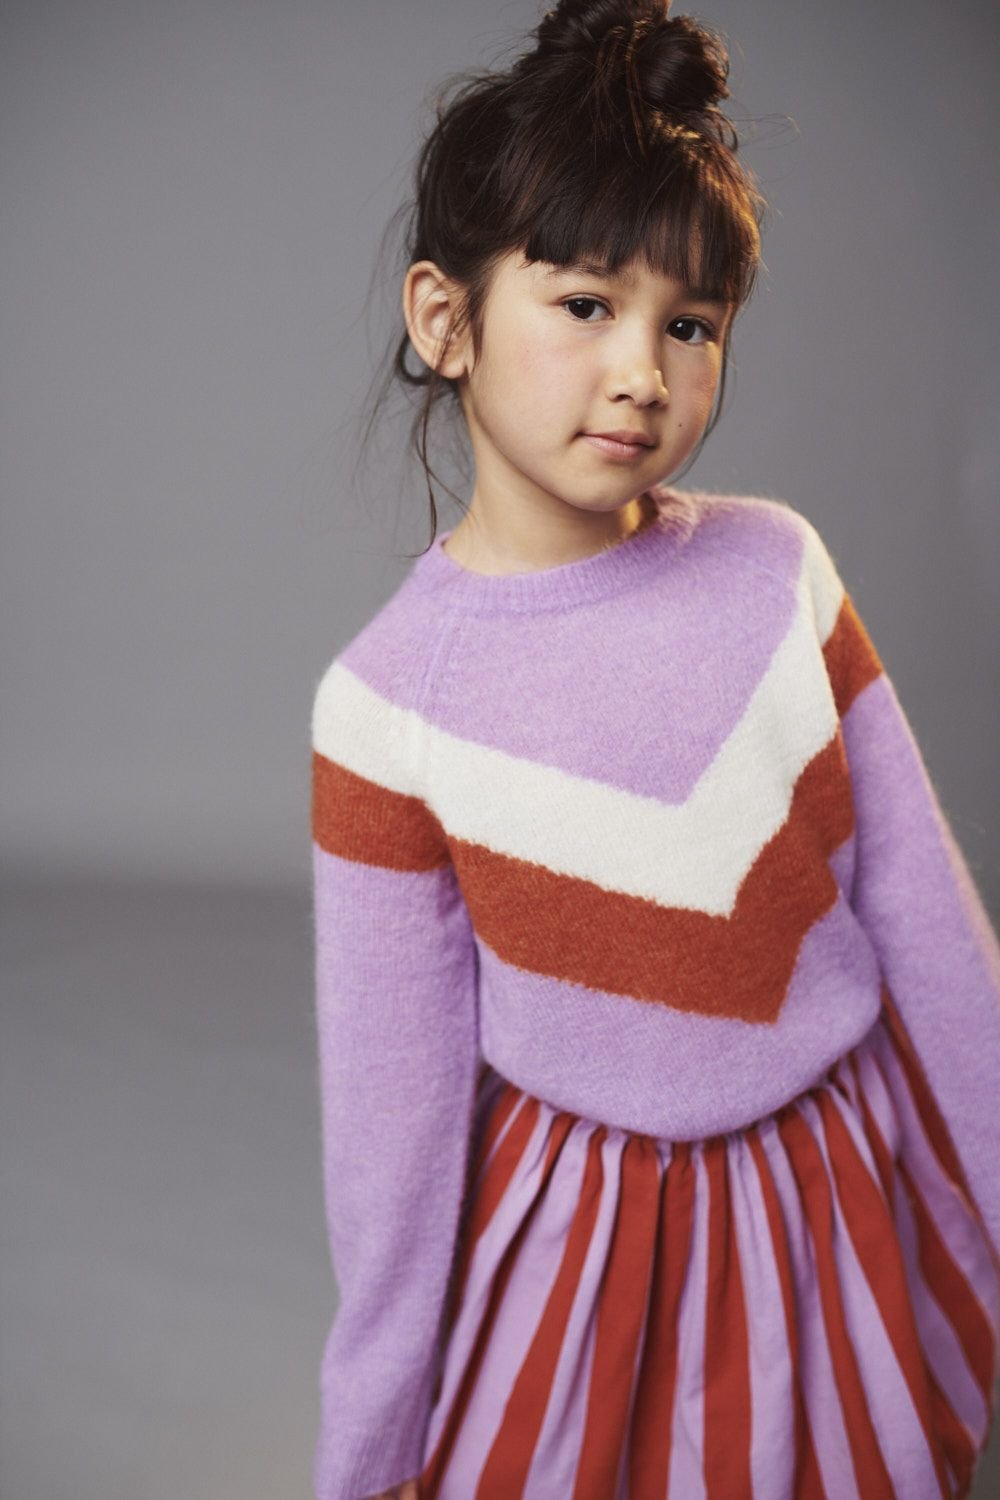 Sweet Lilac Sweater by Lily Balou